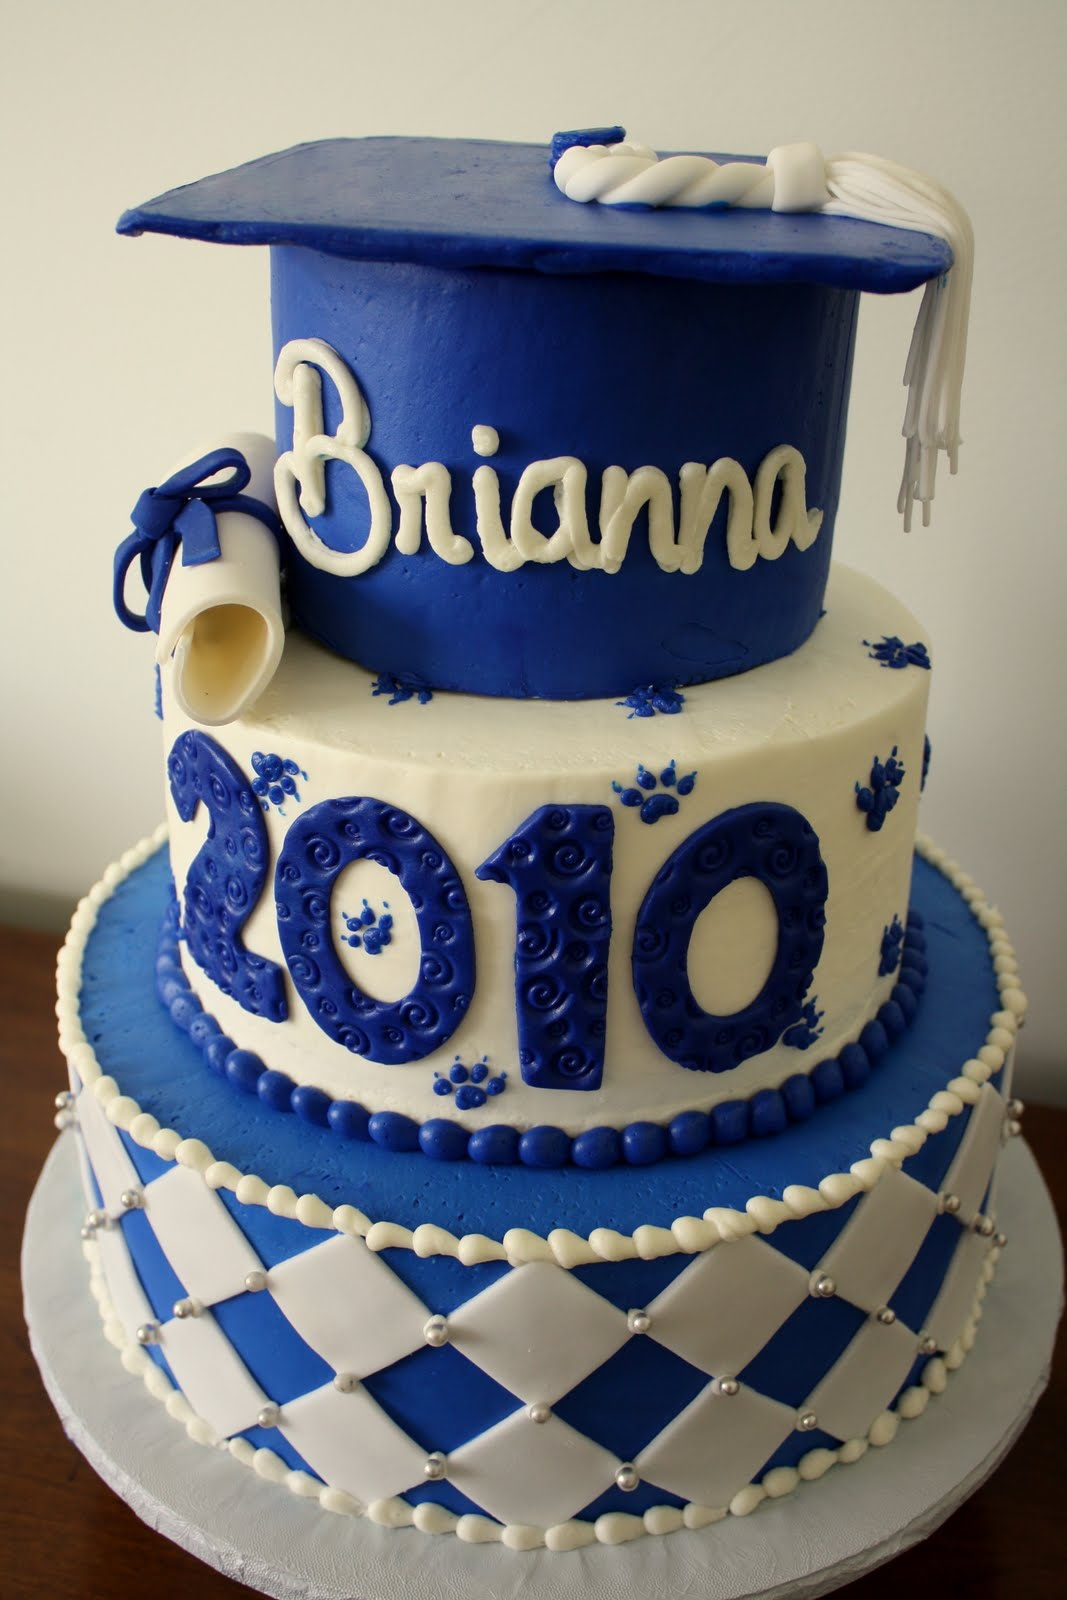 Best Cake Design Schools : Claudine: Graduation Cakes